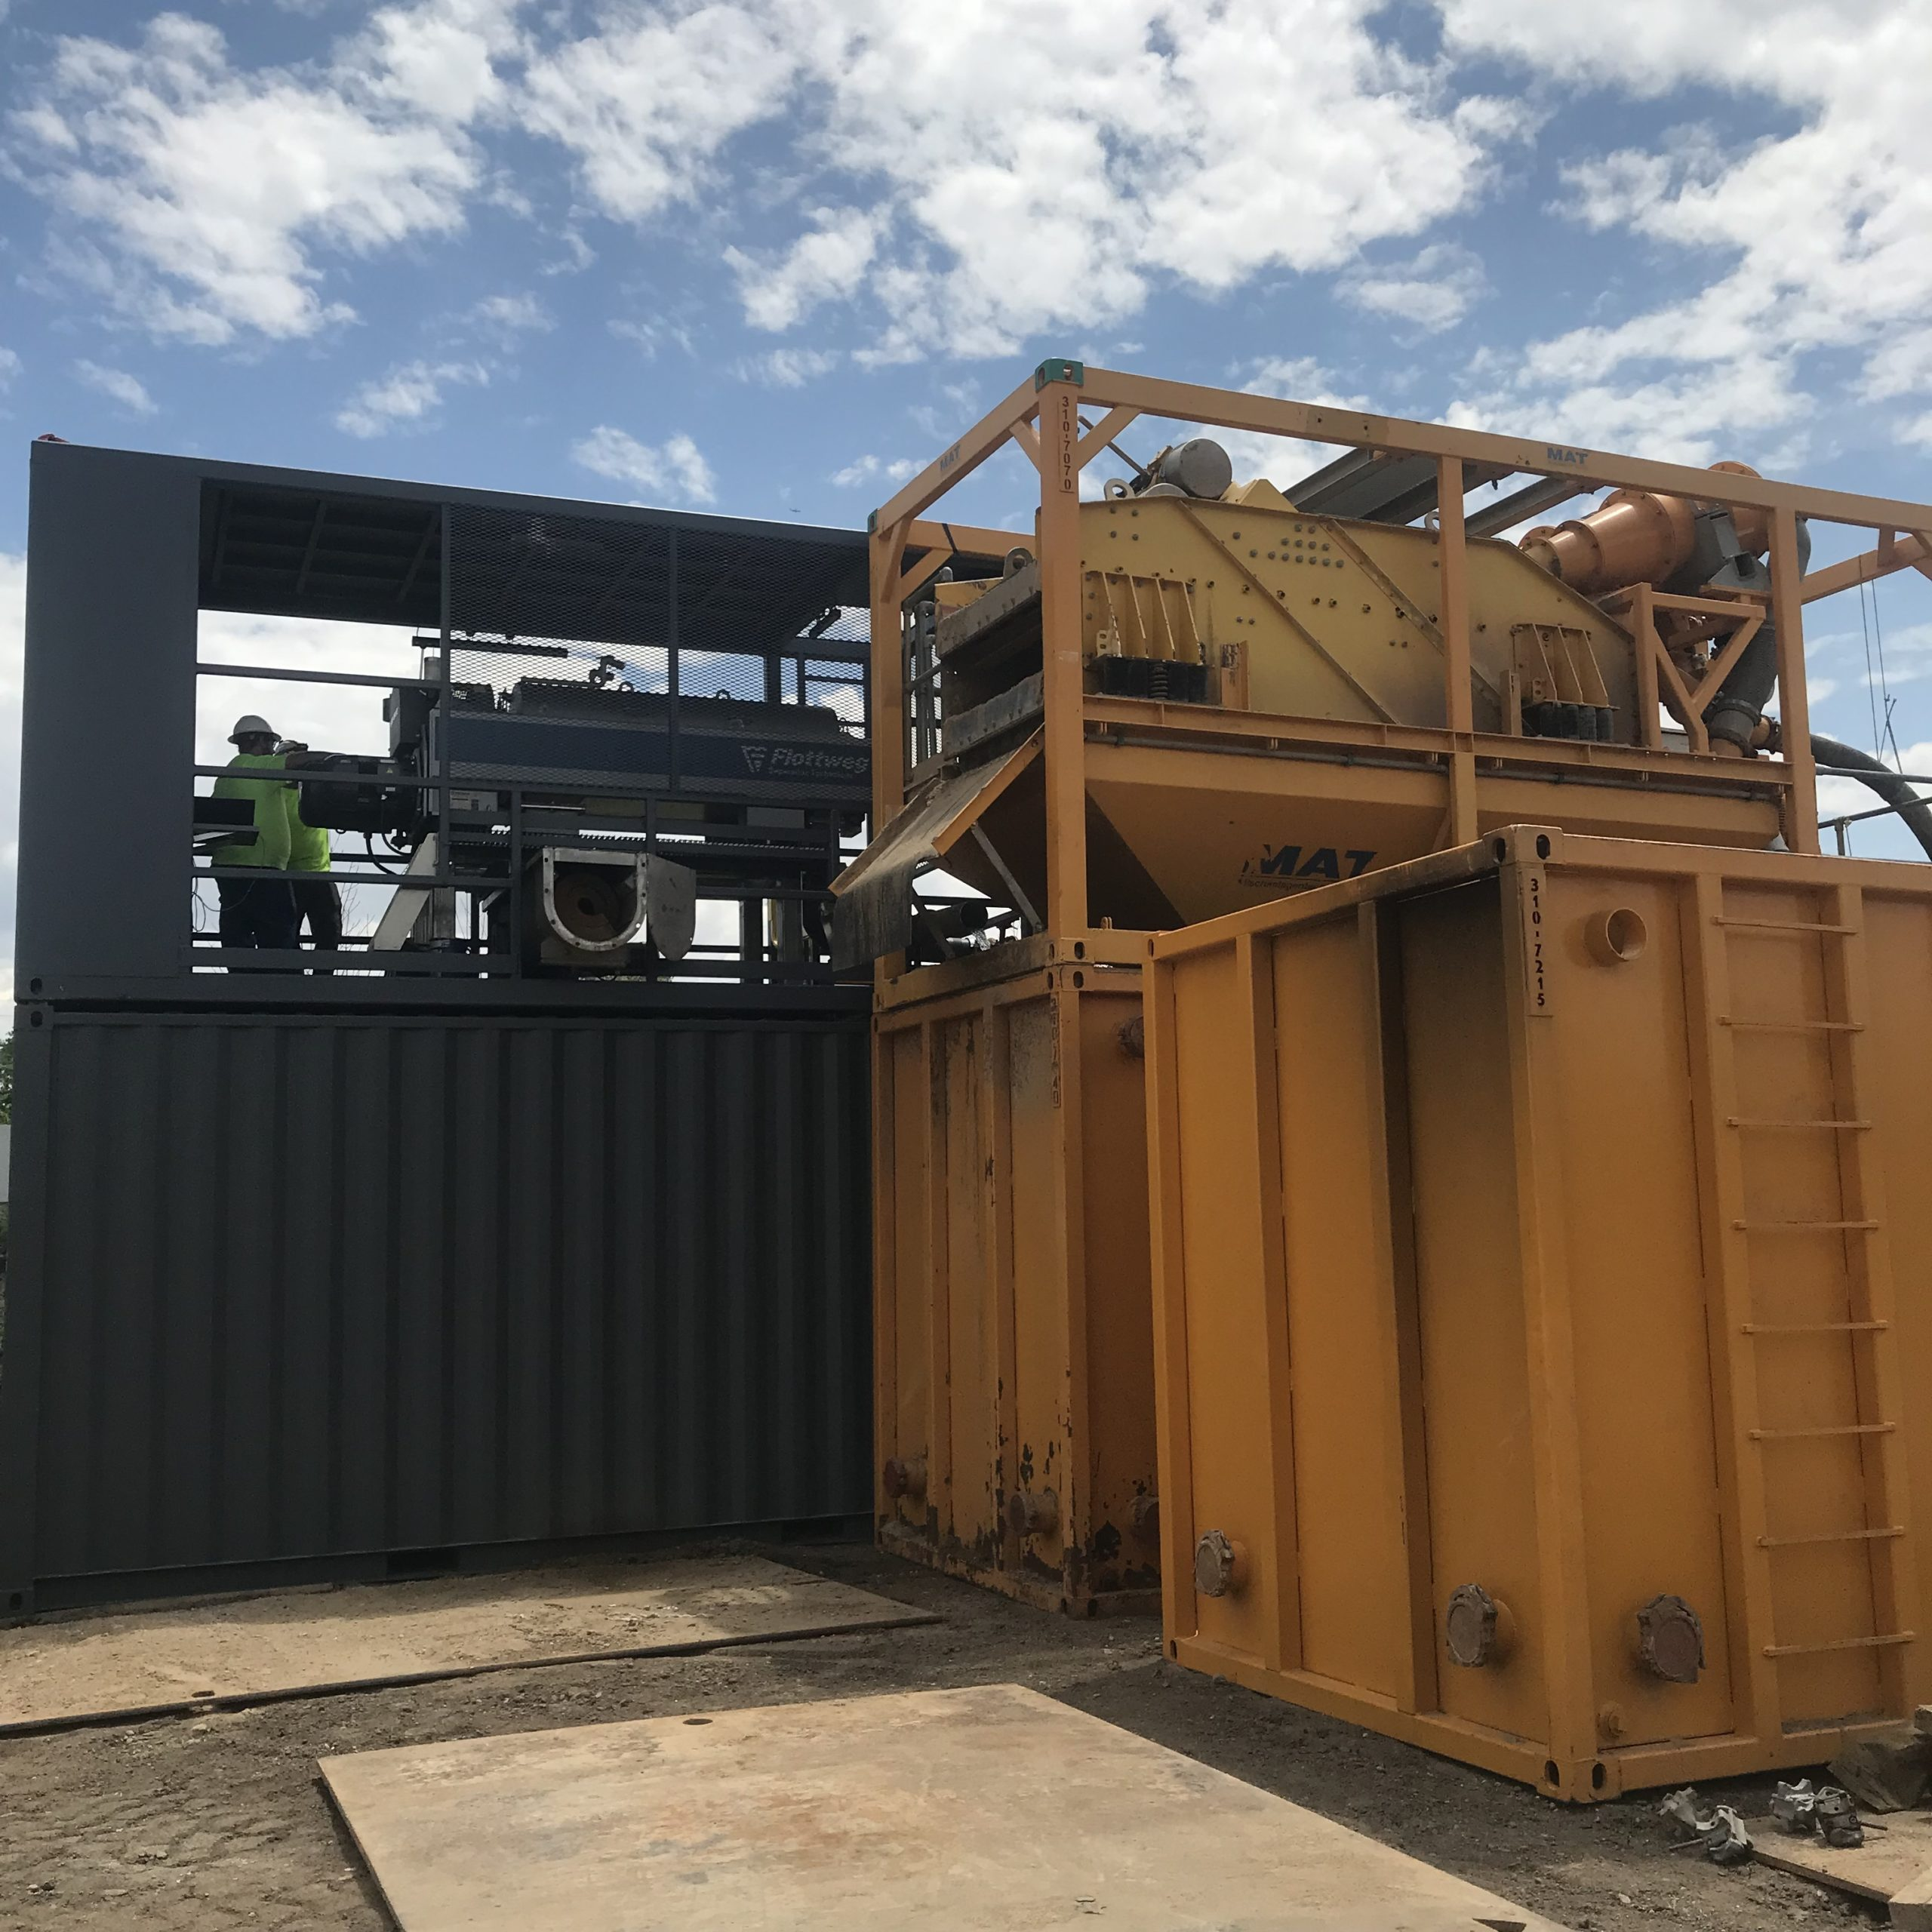 Large yellow containers next to a large grey container where two men stand next to a centrifuge on top of the grey container.